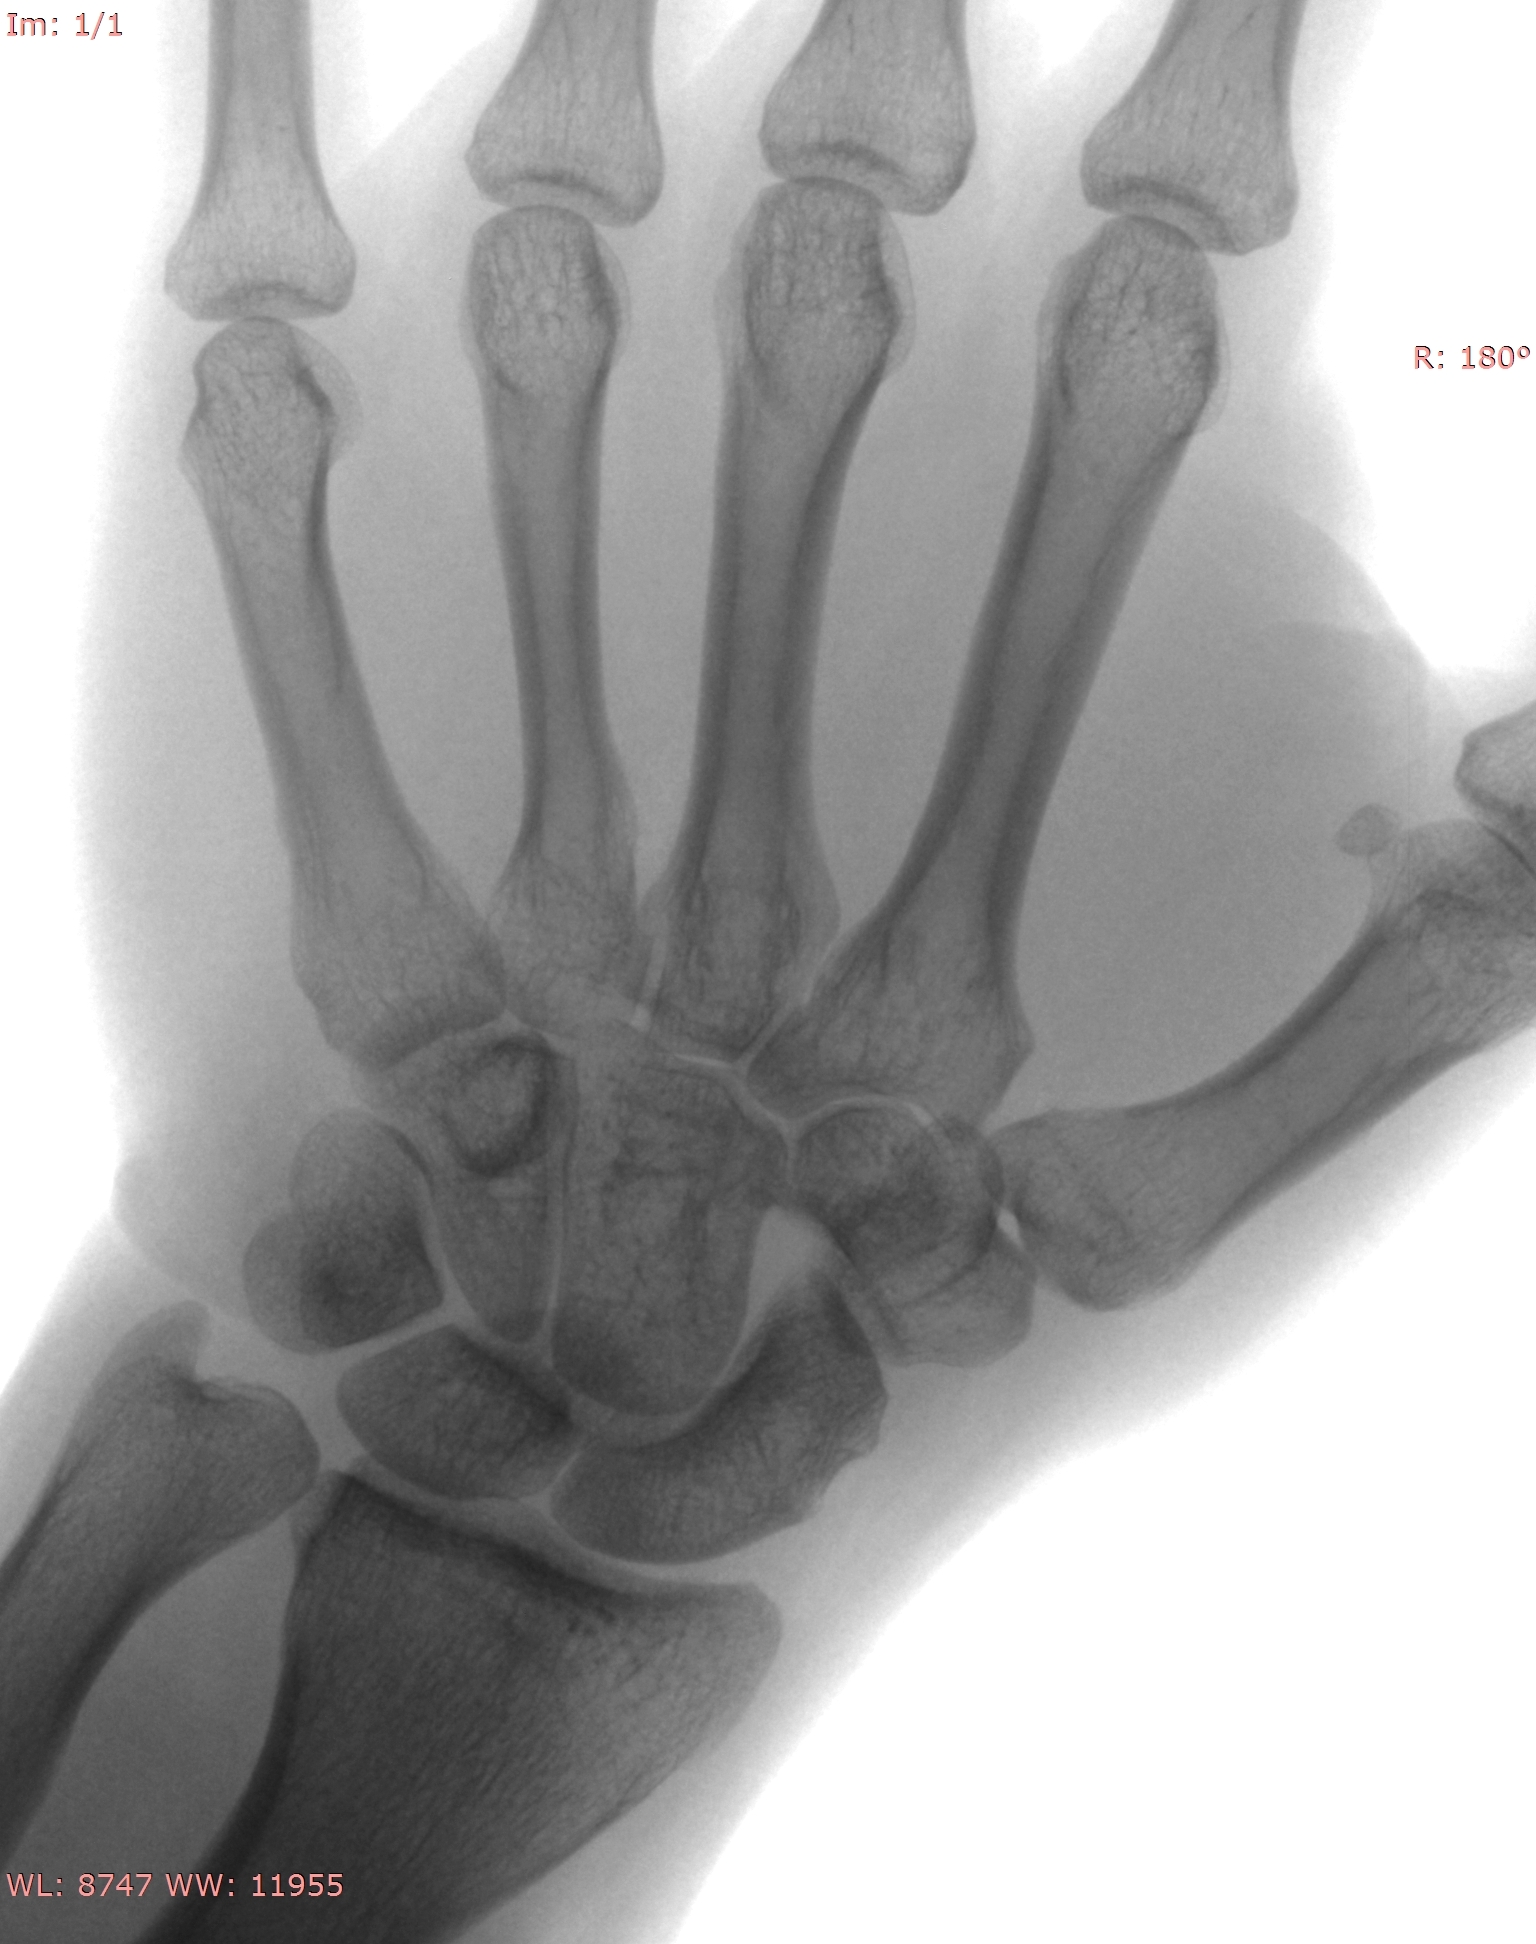 Adult Male Hand